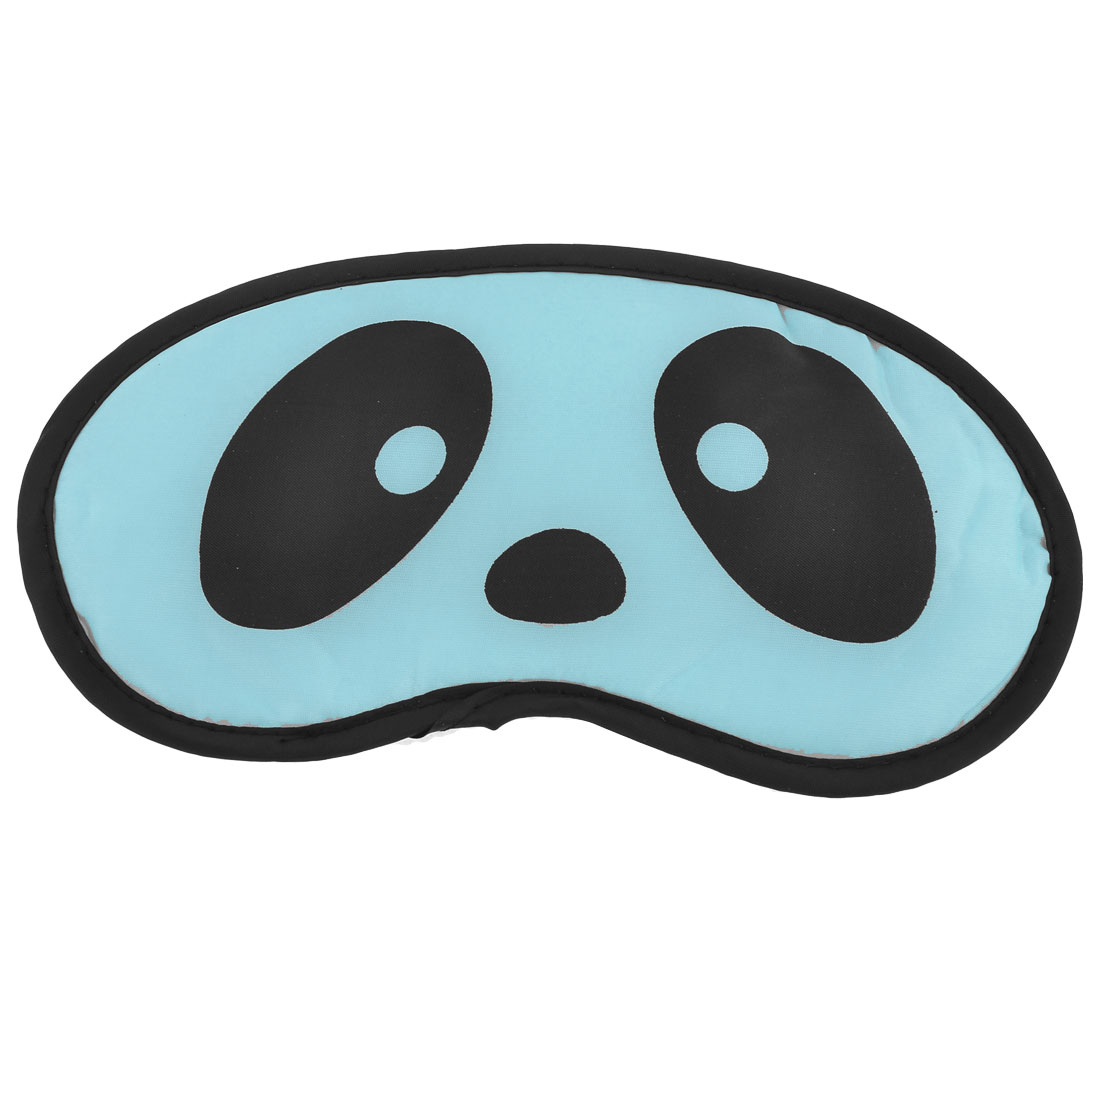 Travel Sleep Blindfold Panda Printed Eyepatch Eye Mask Black Cyan